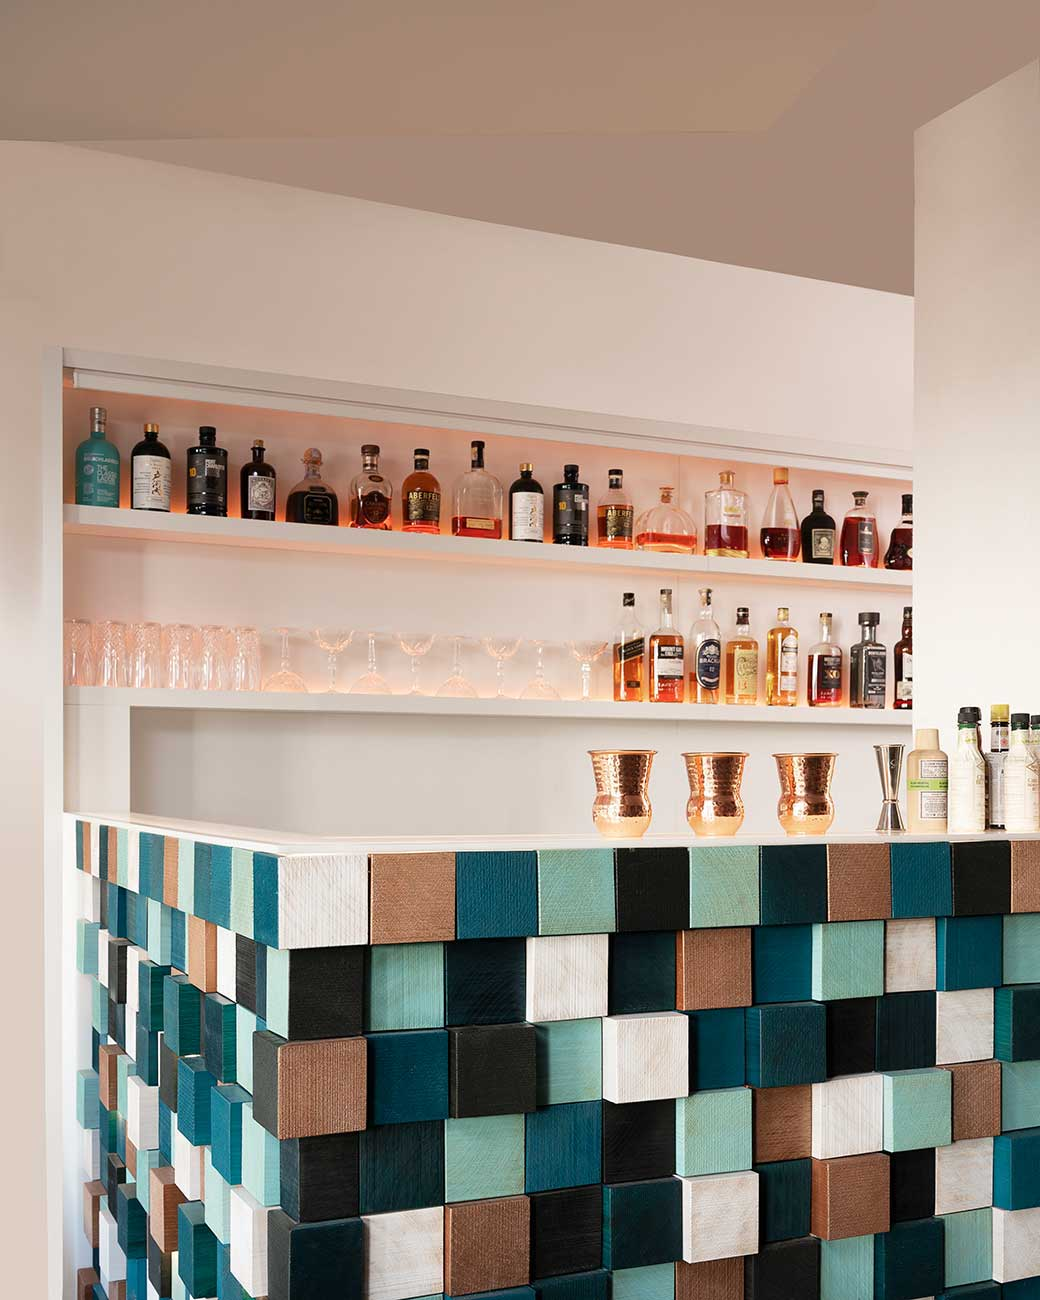 View of the cocktail bar in coloured wooden squares, shelves with alcohol bottles